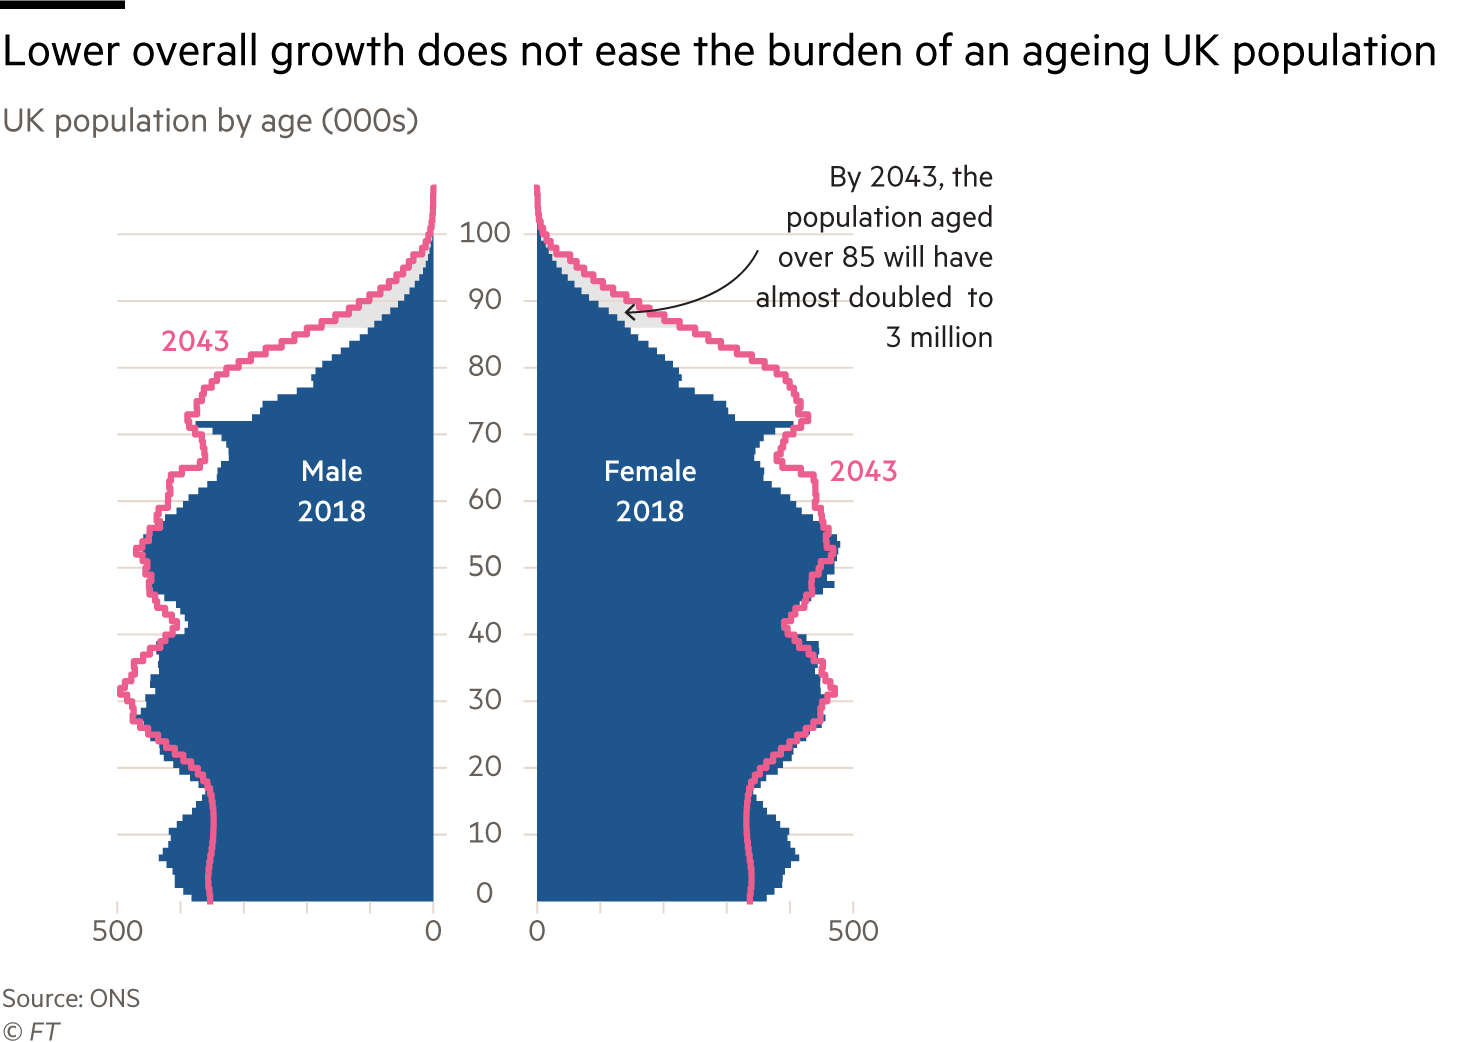 Population pyramid chart comparing the age structure of the UK in 2018 and 2043. It shows the UK's population is set to age considerably during this period due to lower fertility rates